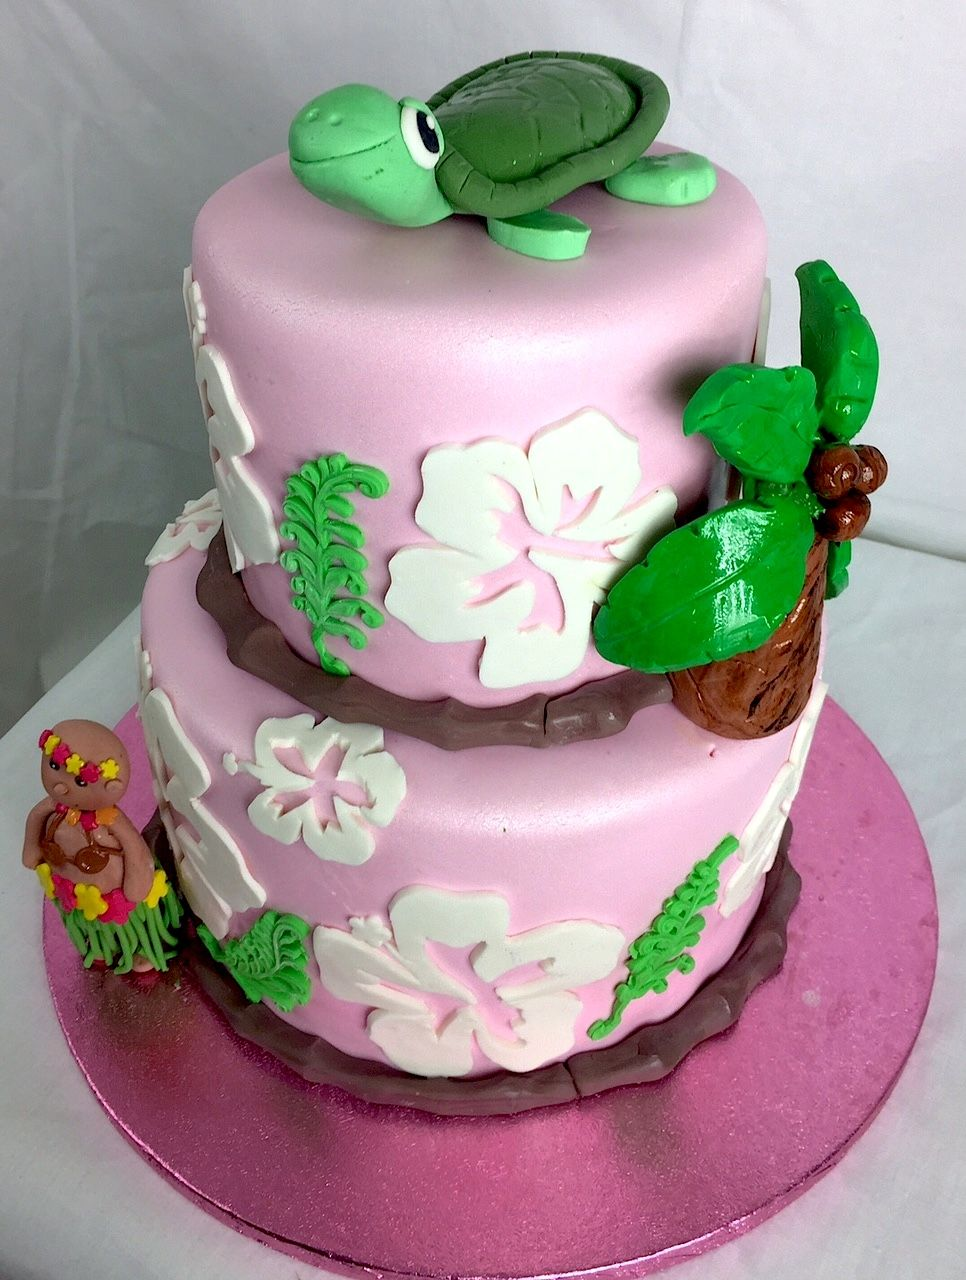 End of Summer Luau Cake! #summer #hawaii #luau #birthday #cake